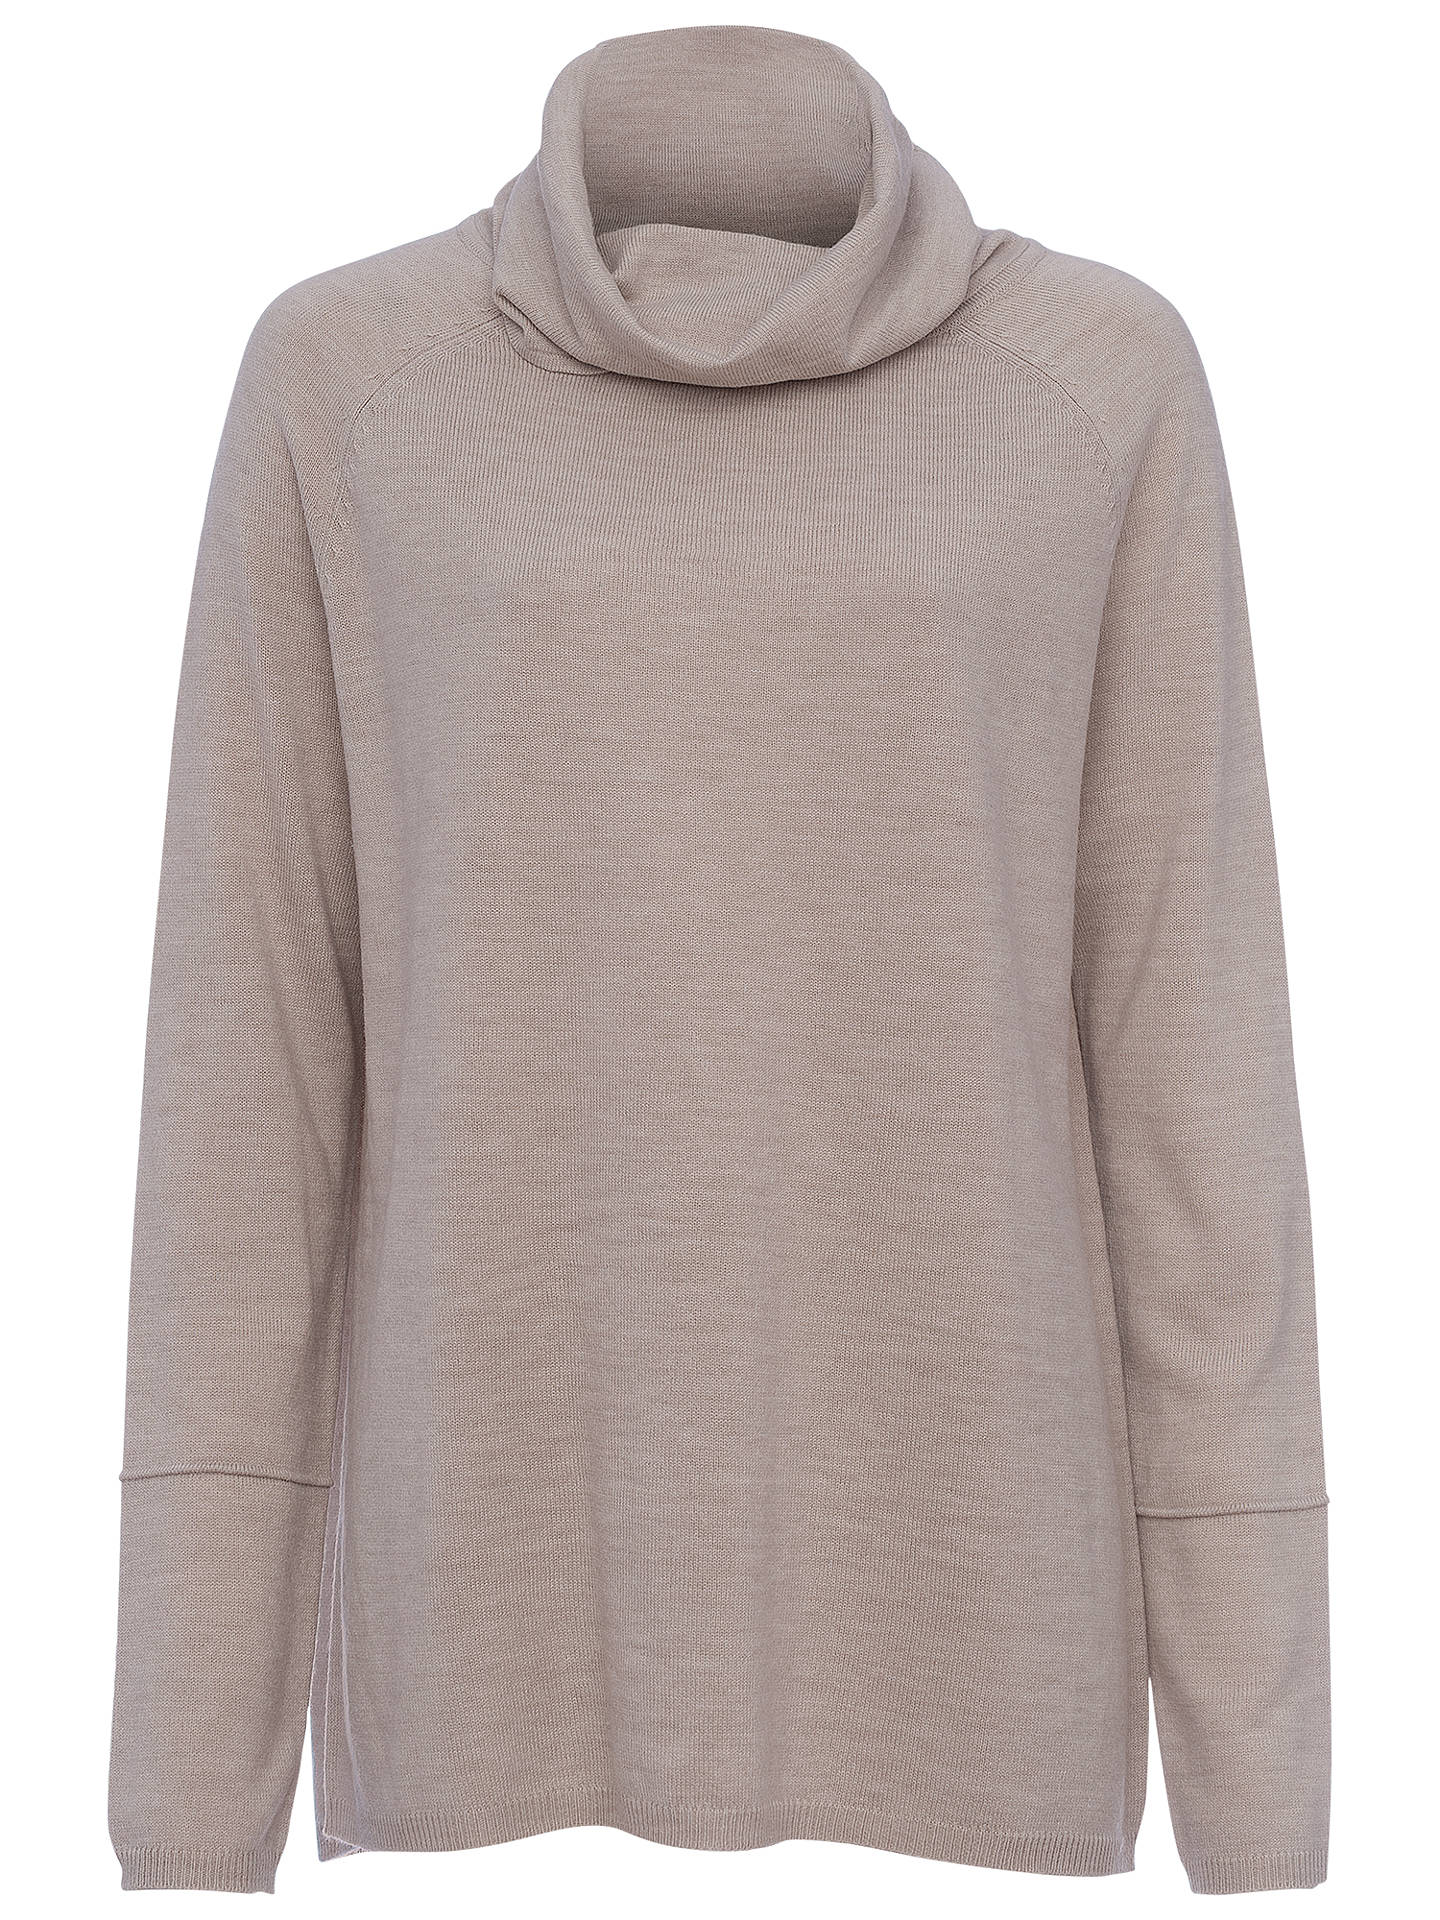 815122c920c Buy French Connection Angelina Cowl Neck Knit Top, Light Oatmeal, XS Online  at johnlewis ...